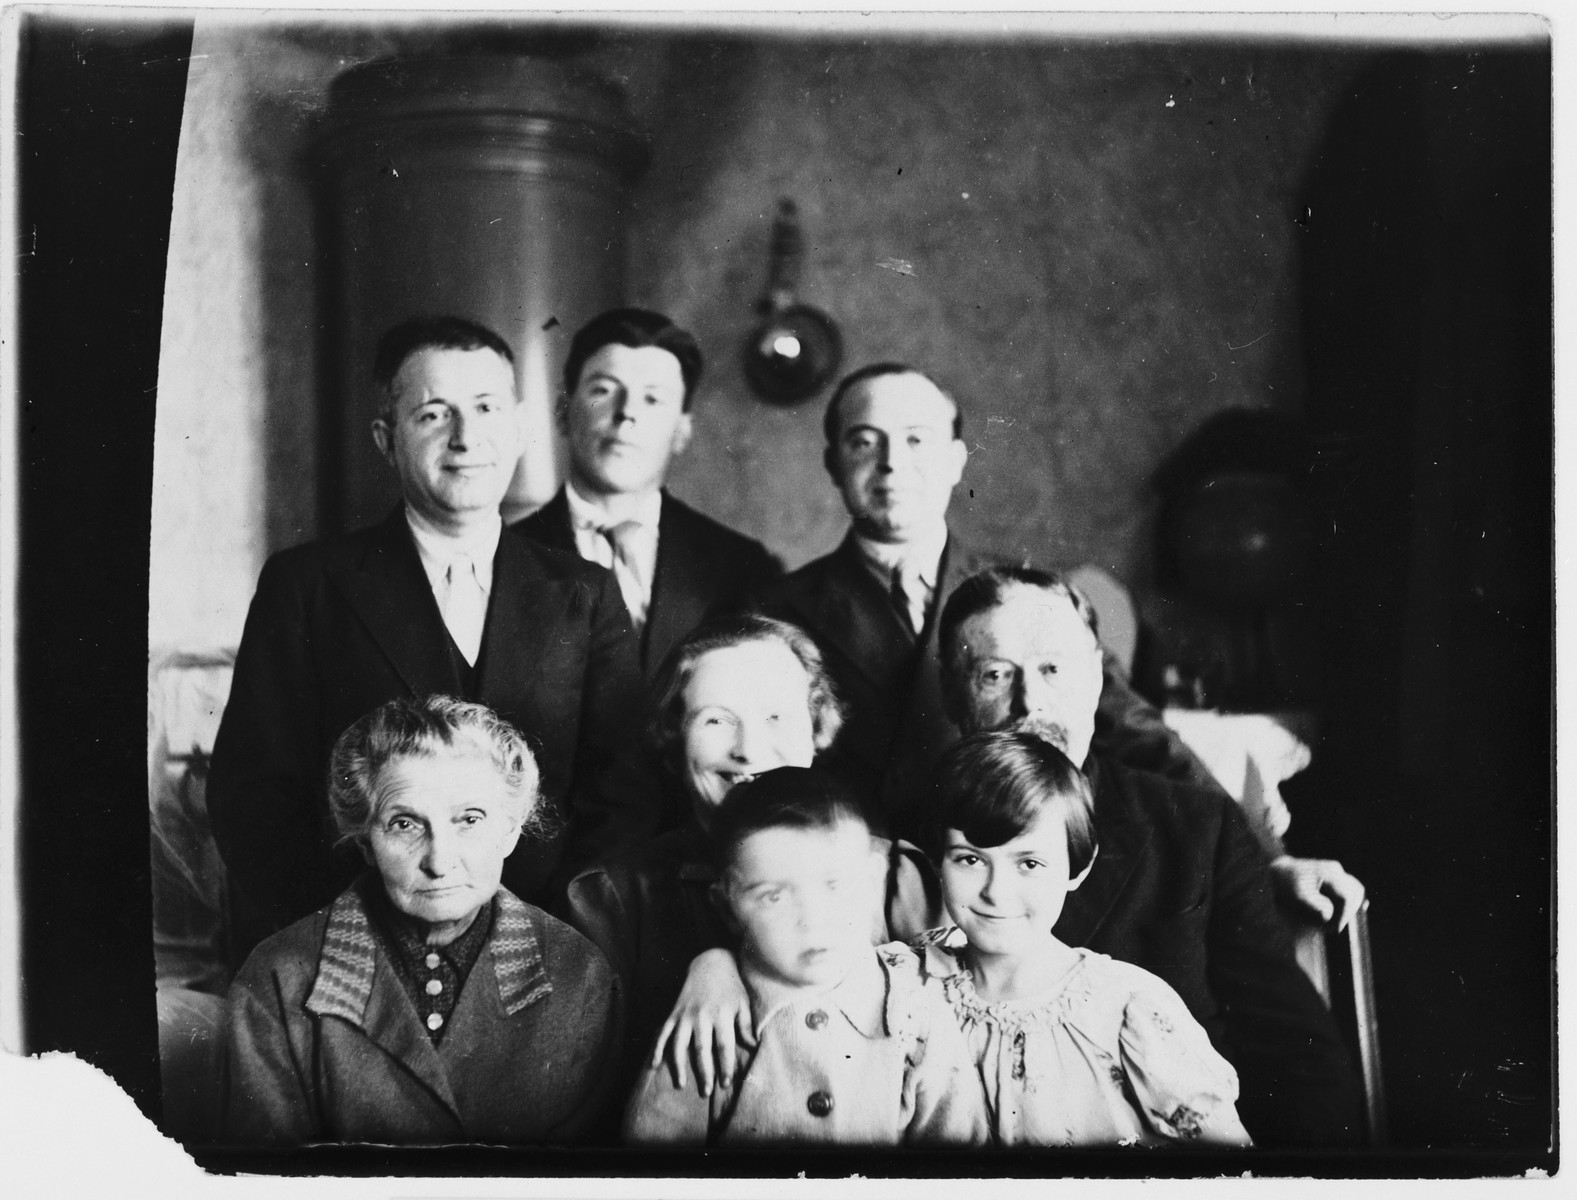 Portrait of the Schneidman and Shpuntov families in their apartment in Leningrad.  Sitting left to right are Maria Leibman, baby Maria, Galina Schneidman, Maria Shpuntov-Golba and Tanfel Shpuntov.  Standing are Ilya Schneidman, Yousek Shpuntov and Simon Golba.